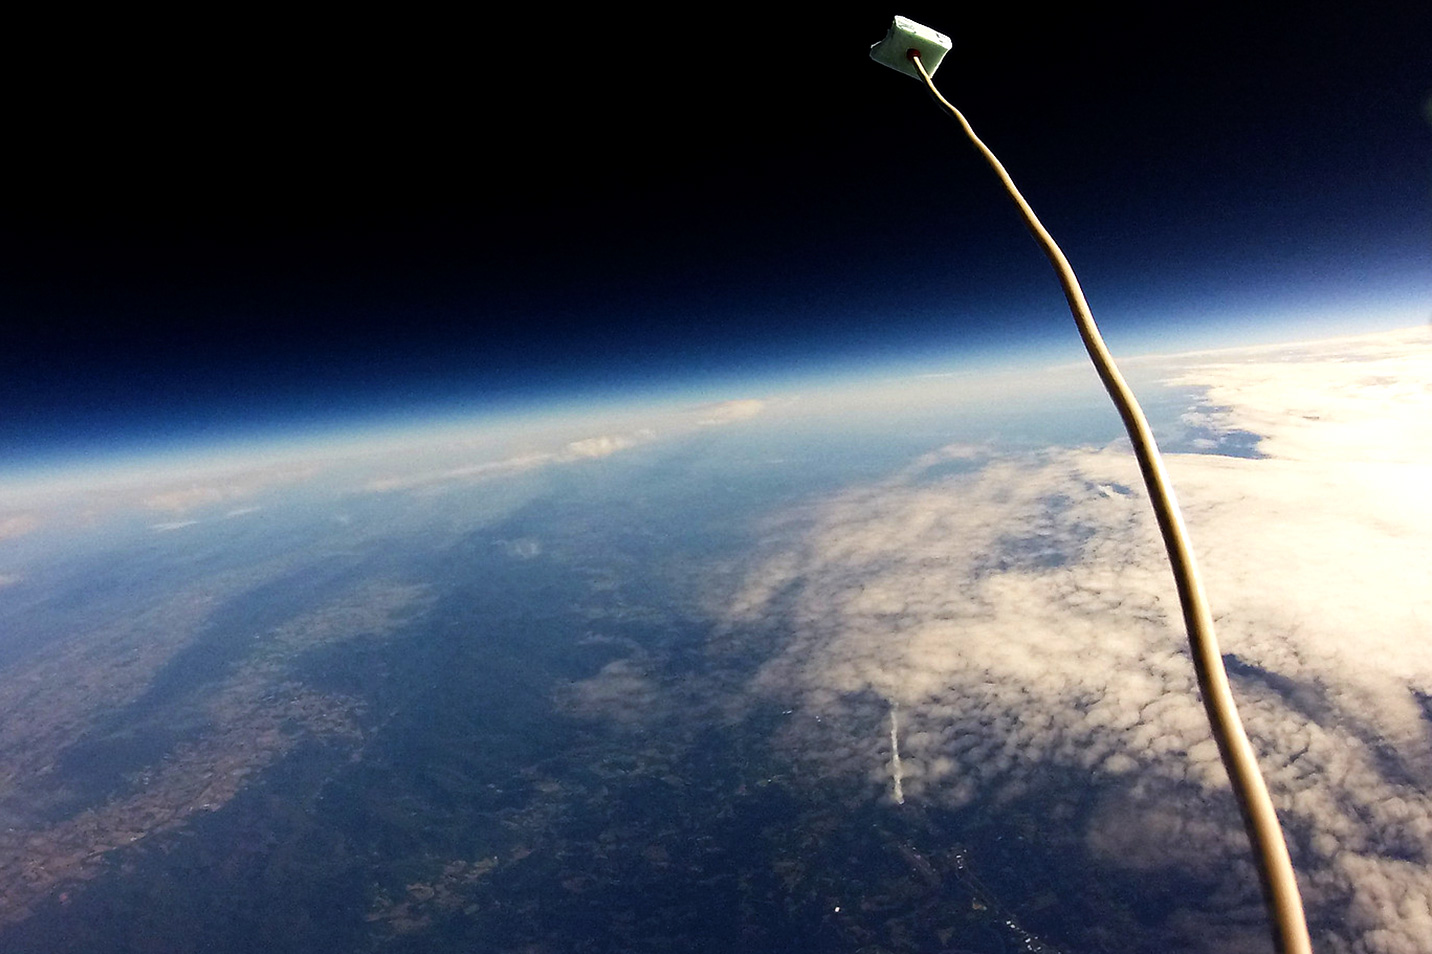 A view from a camera aboard the payload of the high-altitude weather balloon.